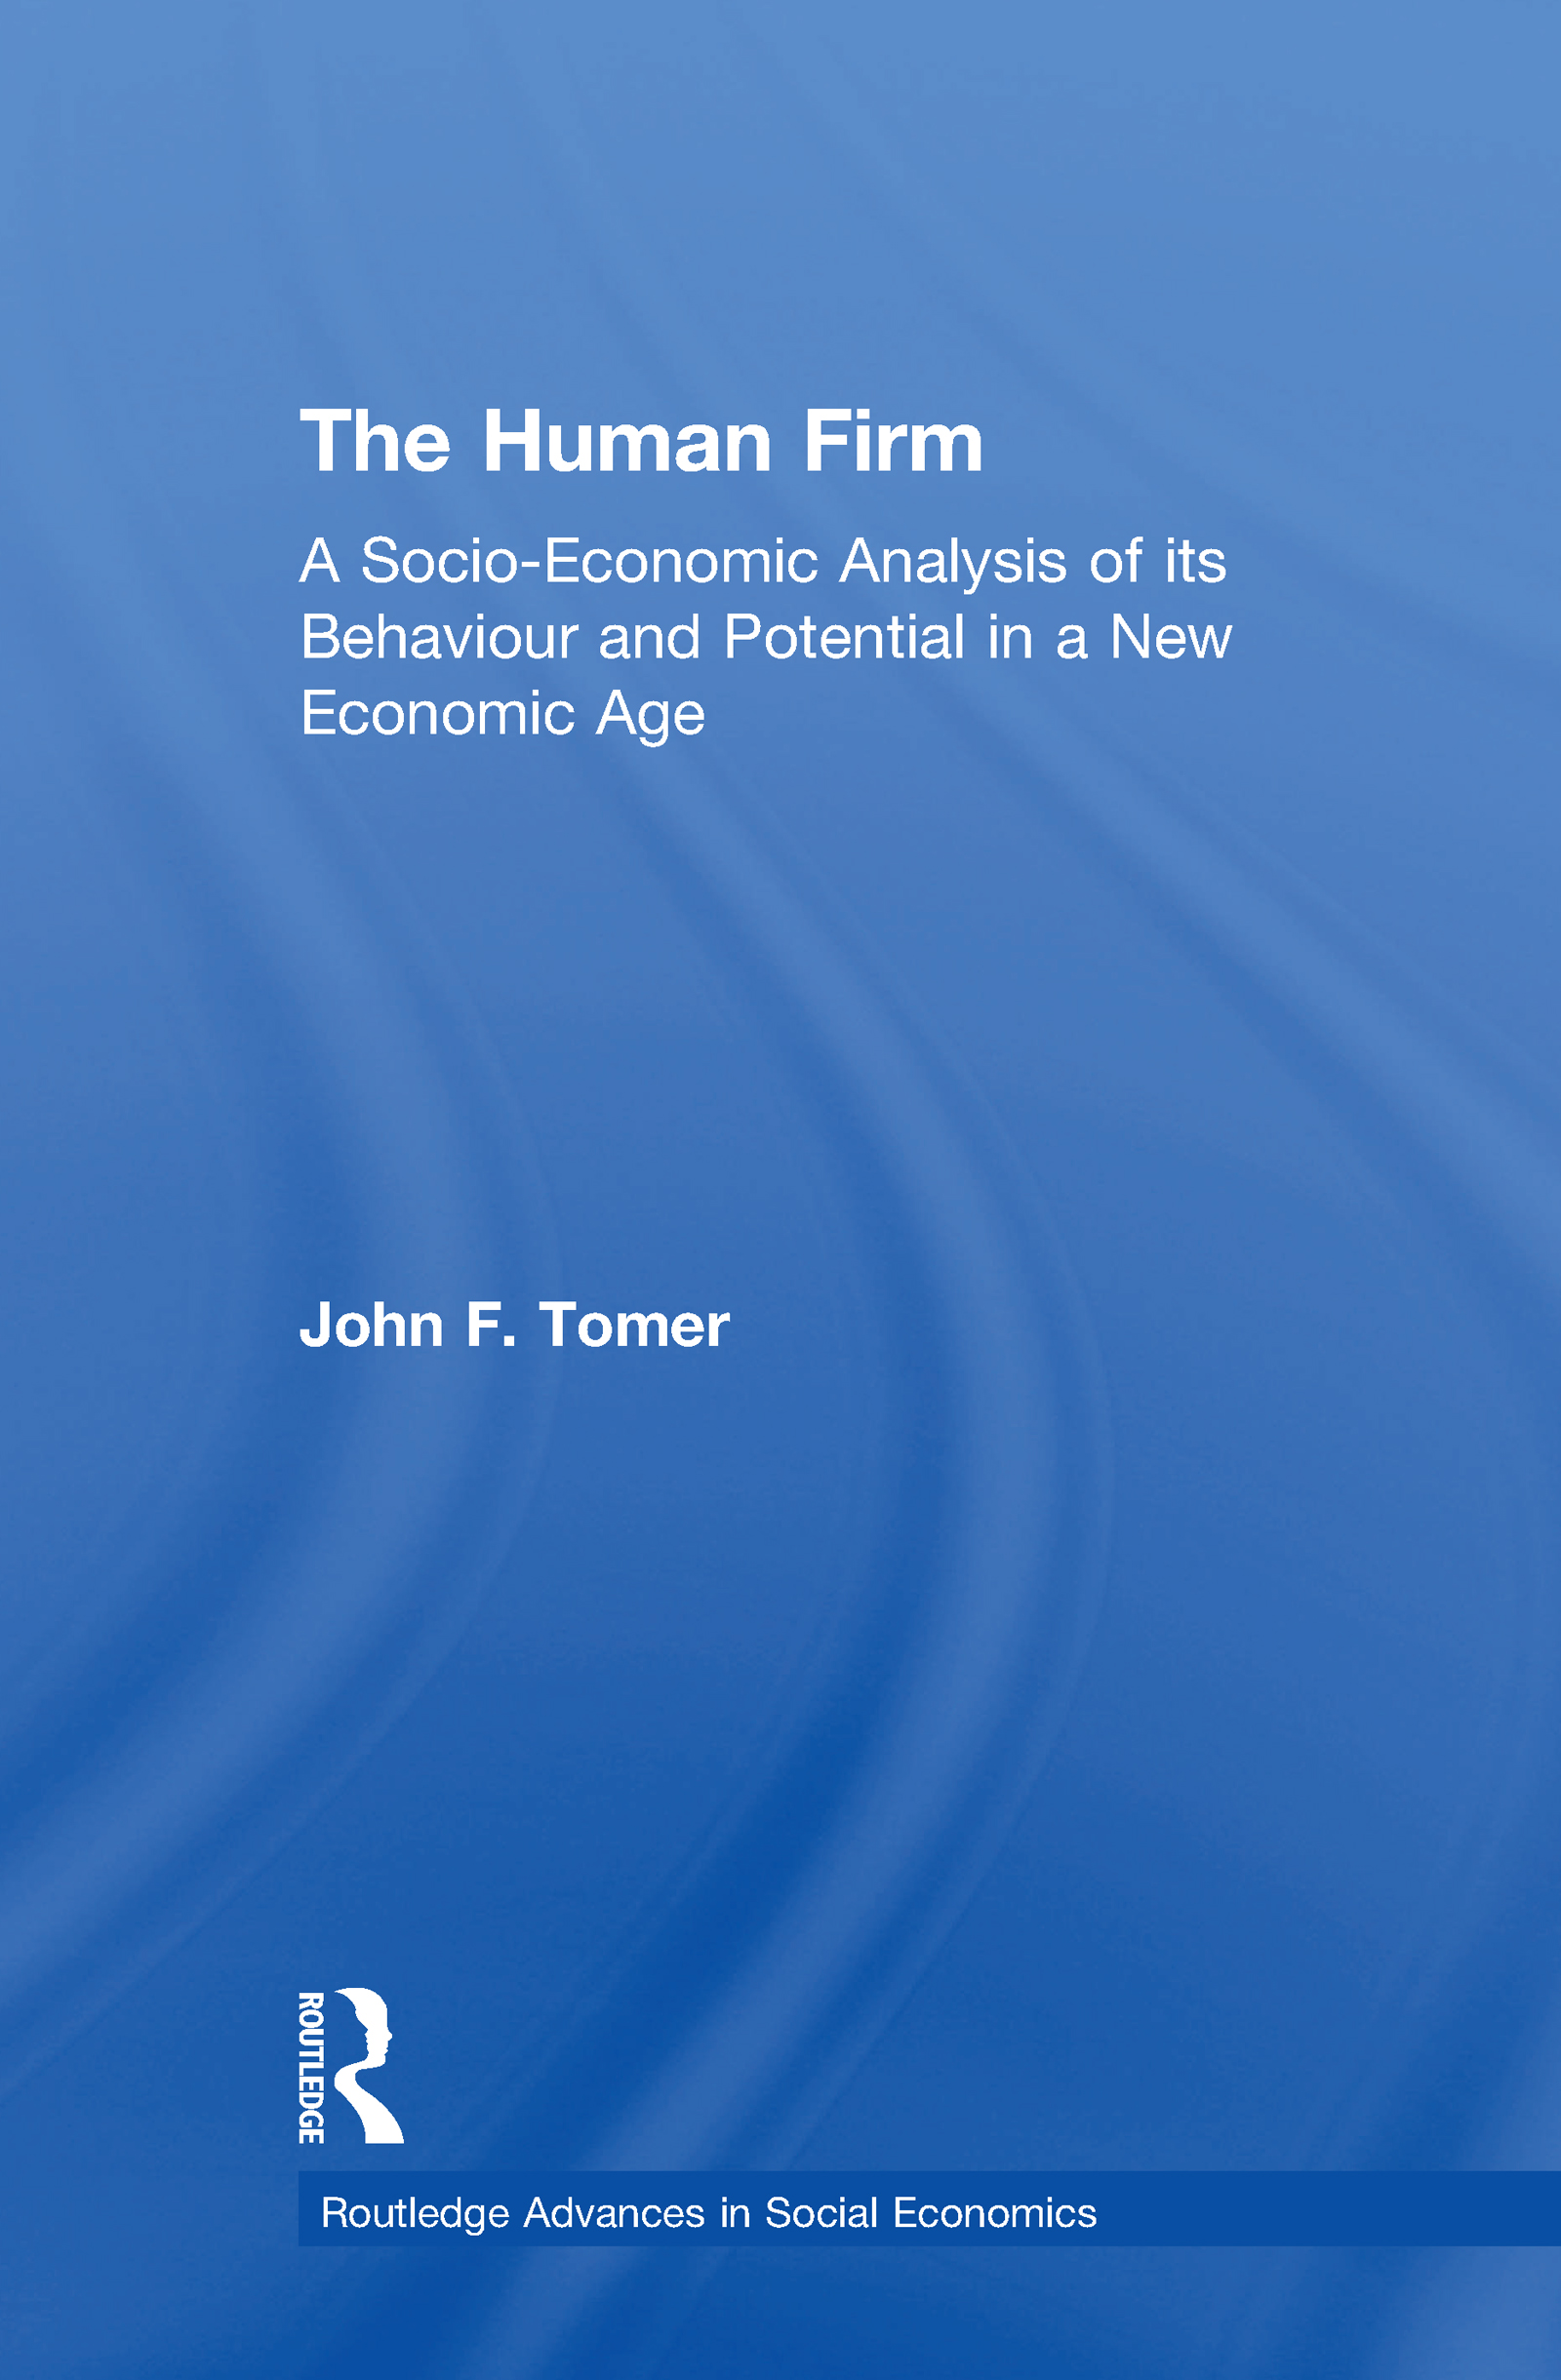 The Human Firm: A Socio-Economic Analysis of its Behaviour and Potential in a New Economic Age book cover